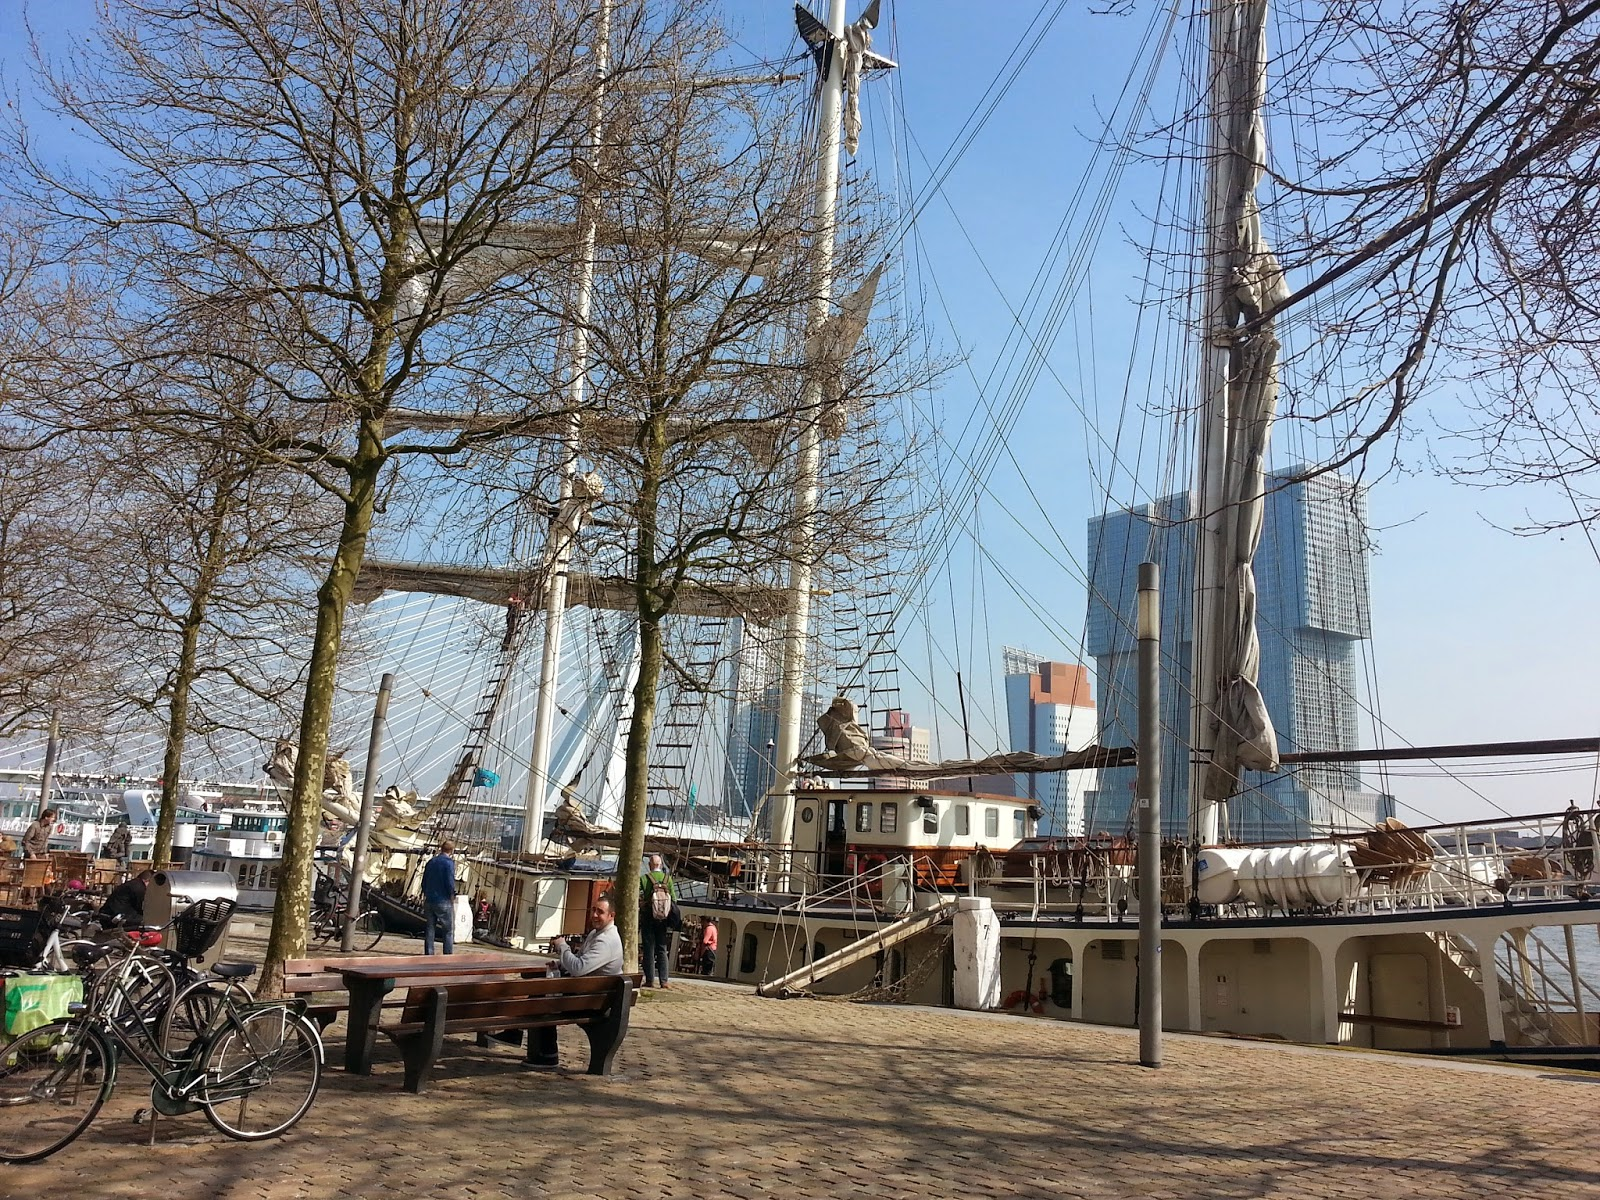 Pirate Ship Rotterdam